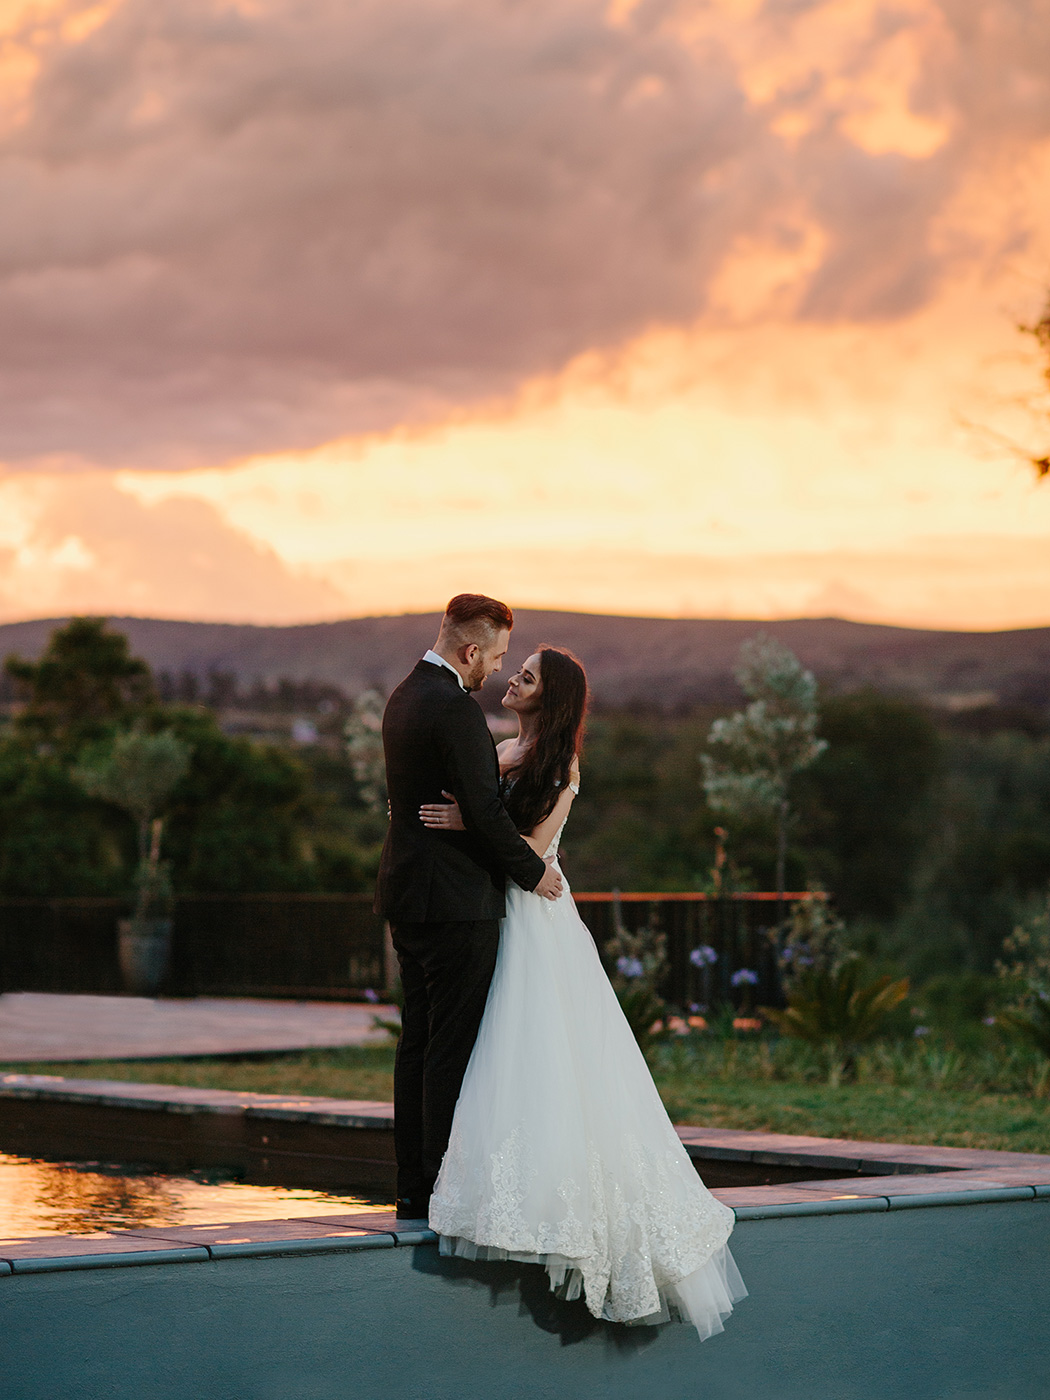 Bride & Groom Sunset | Rensche Mari